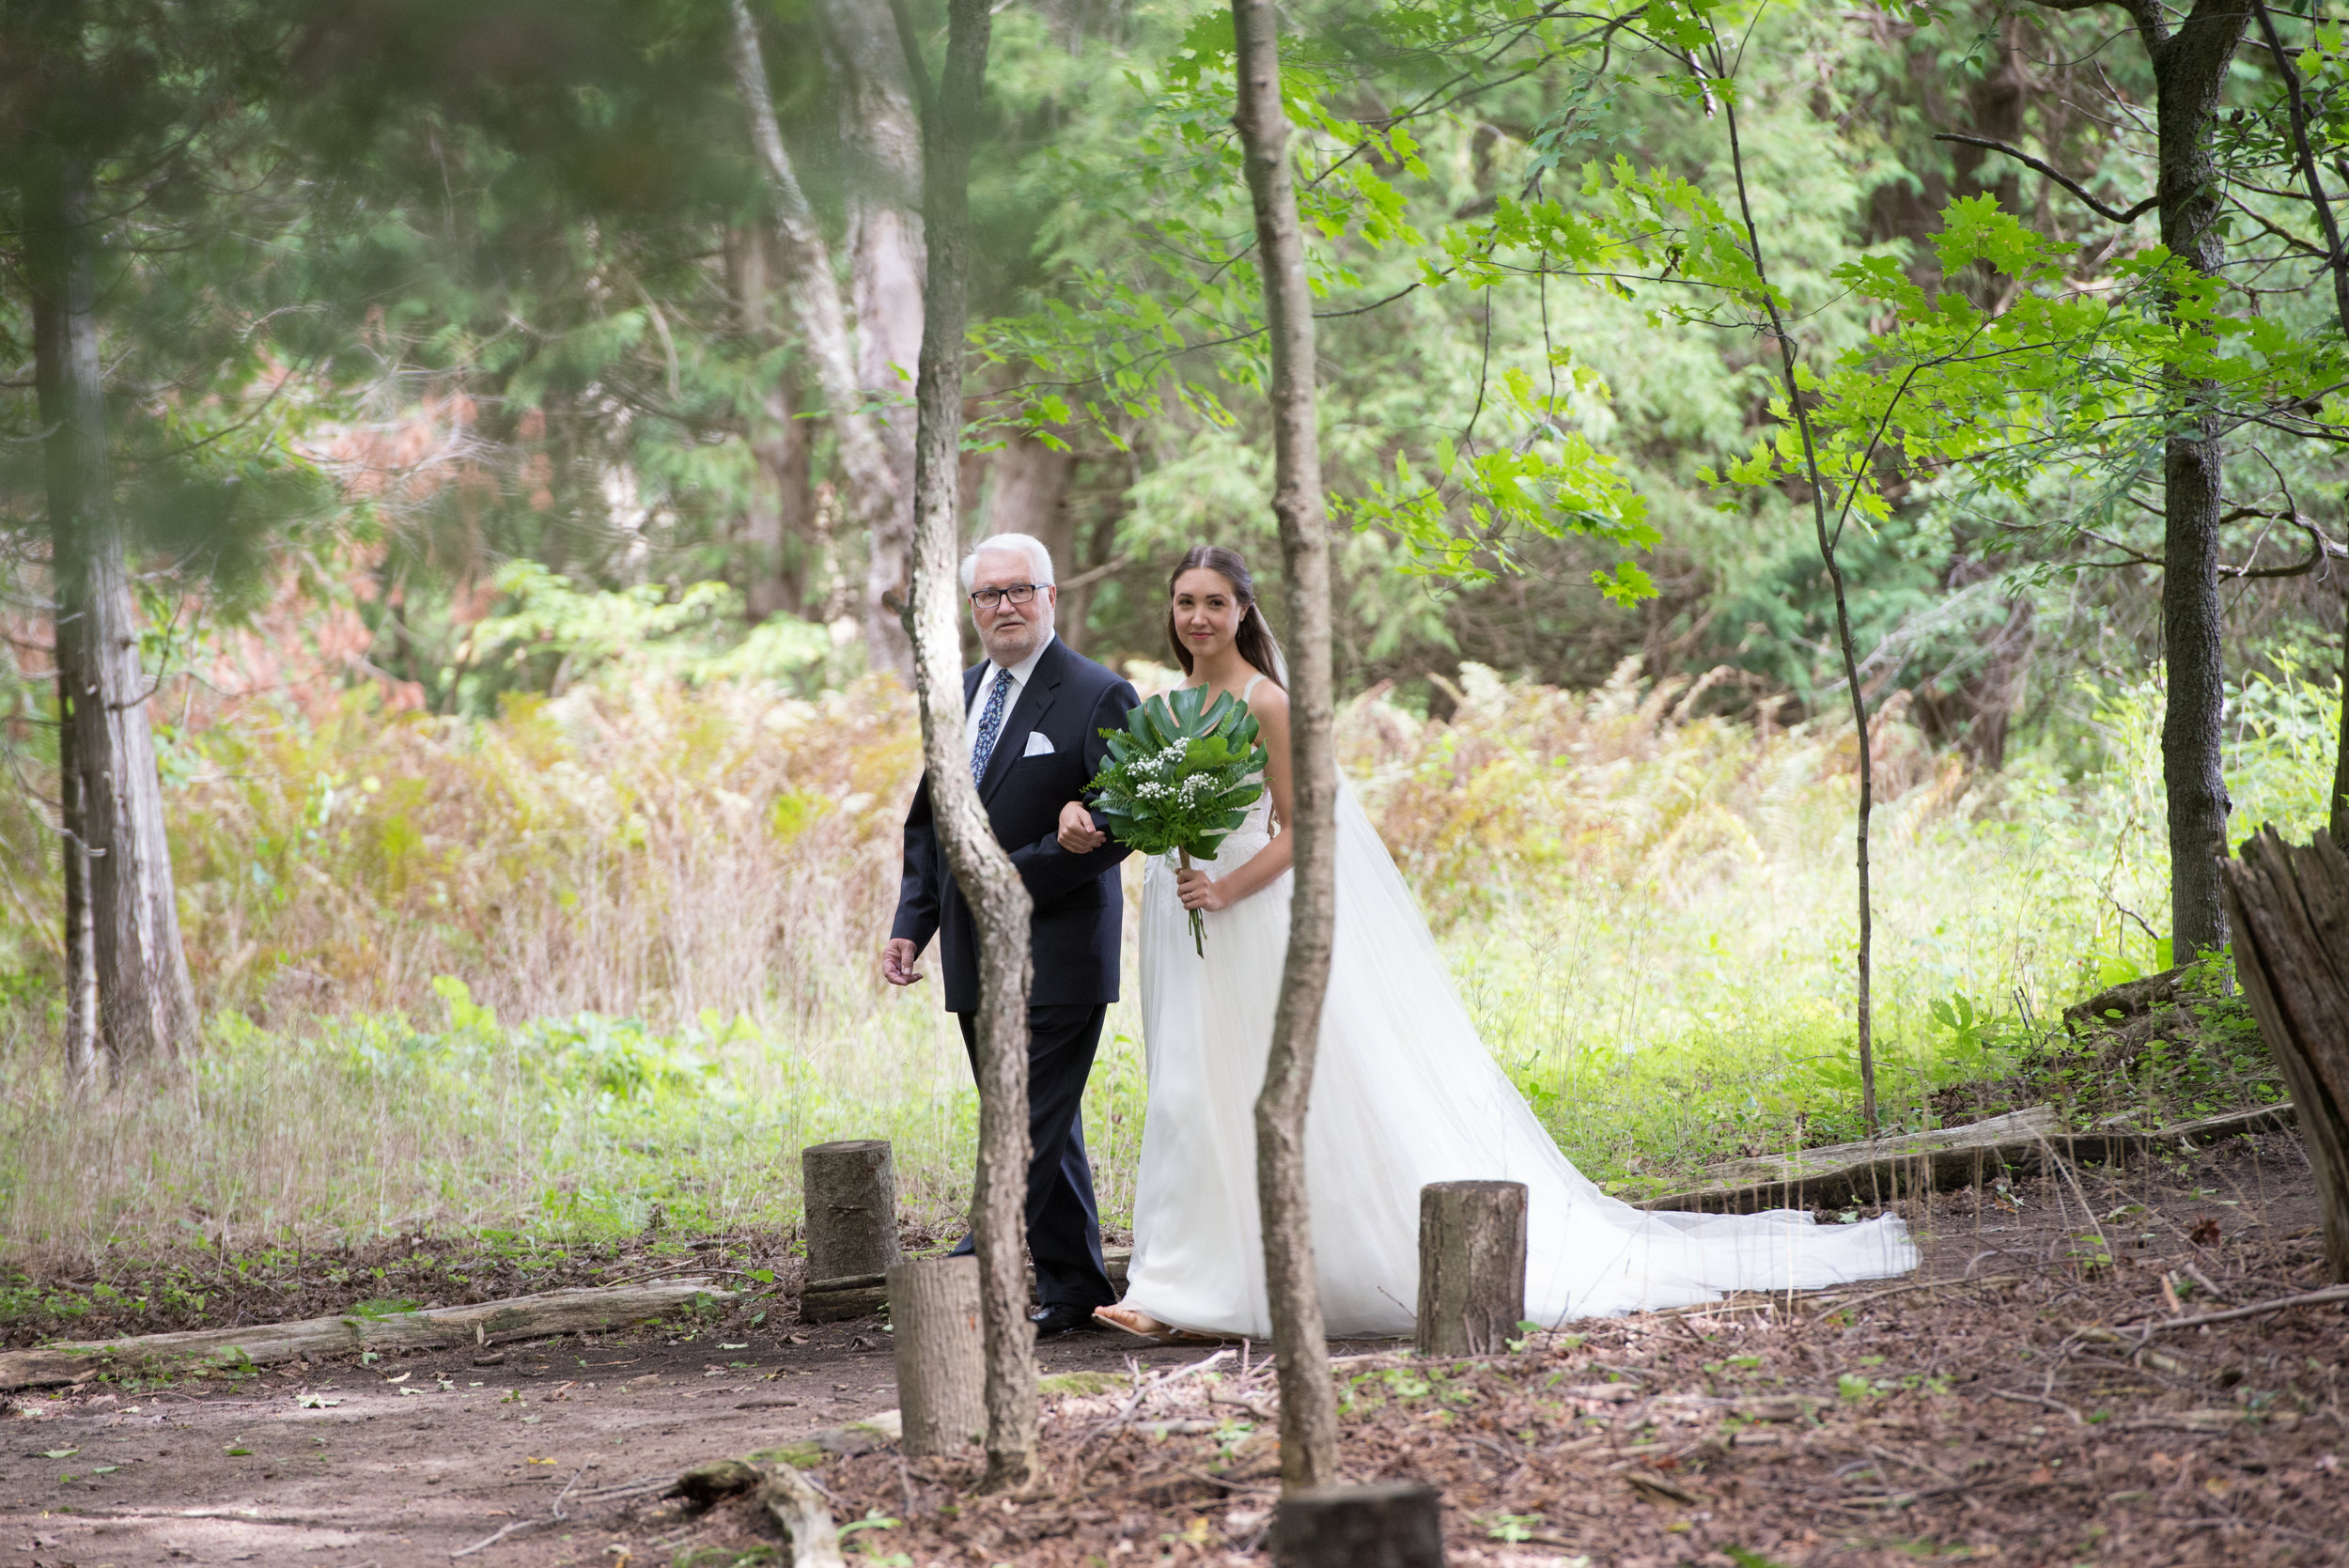 Here comes the bride. // Wedding photos by Karmel Kreative // Plant Based Bride